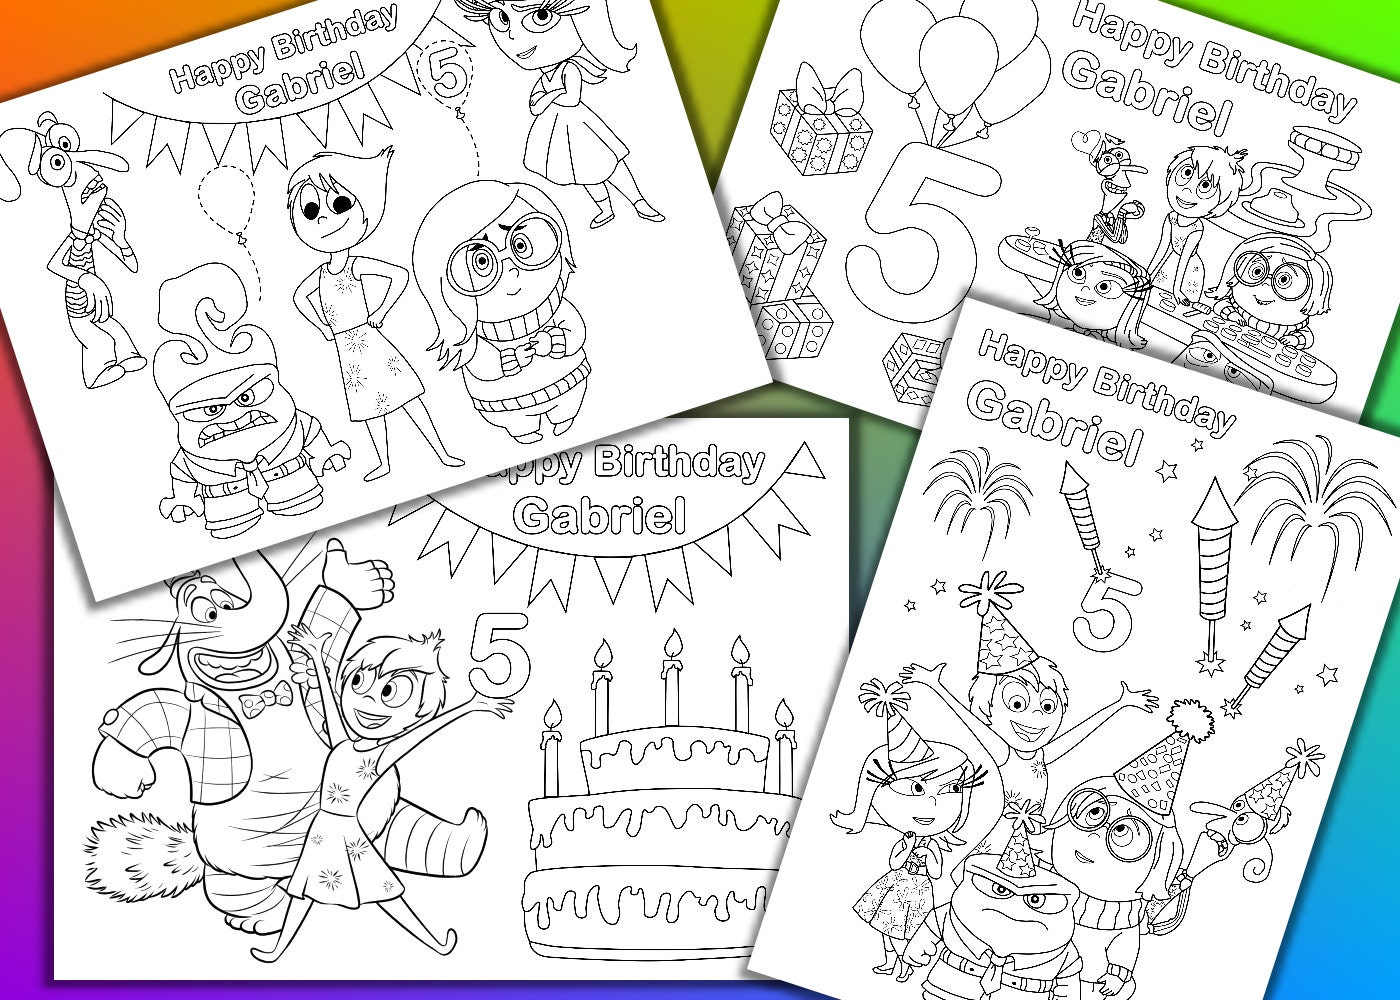 Inside out coloring book pages - Inside Out Birthday Party Coloring Pages Activity Pdf File